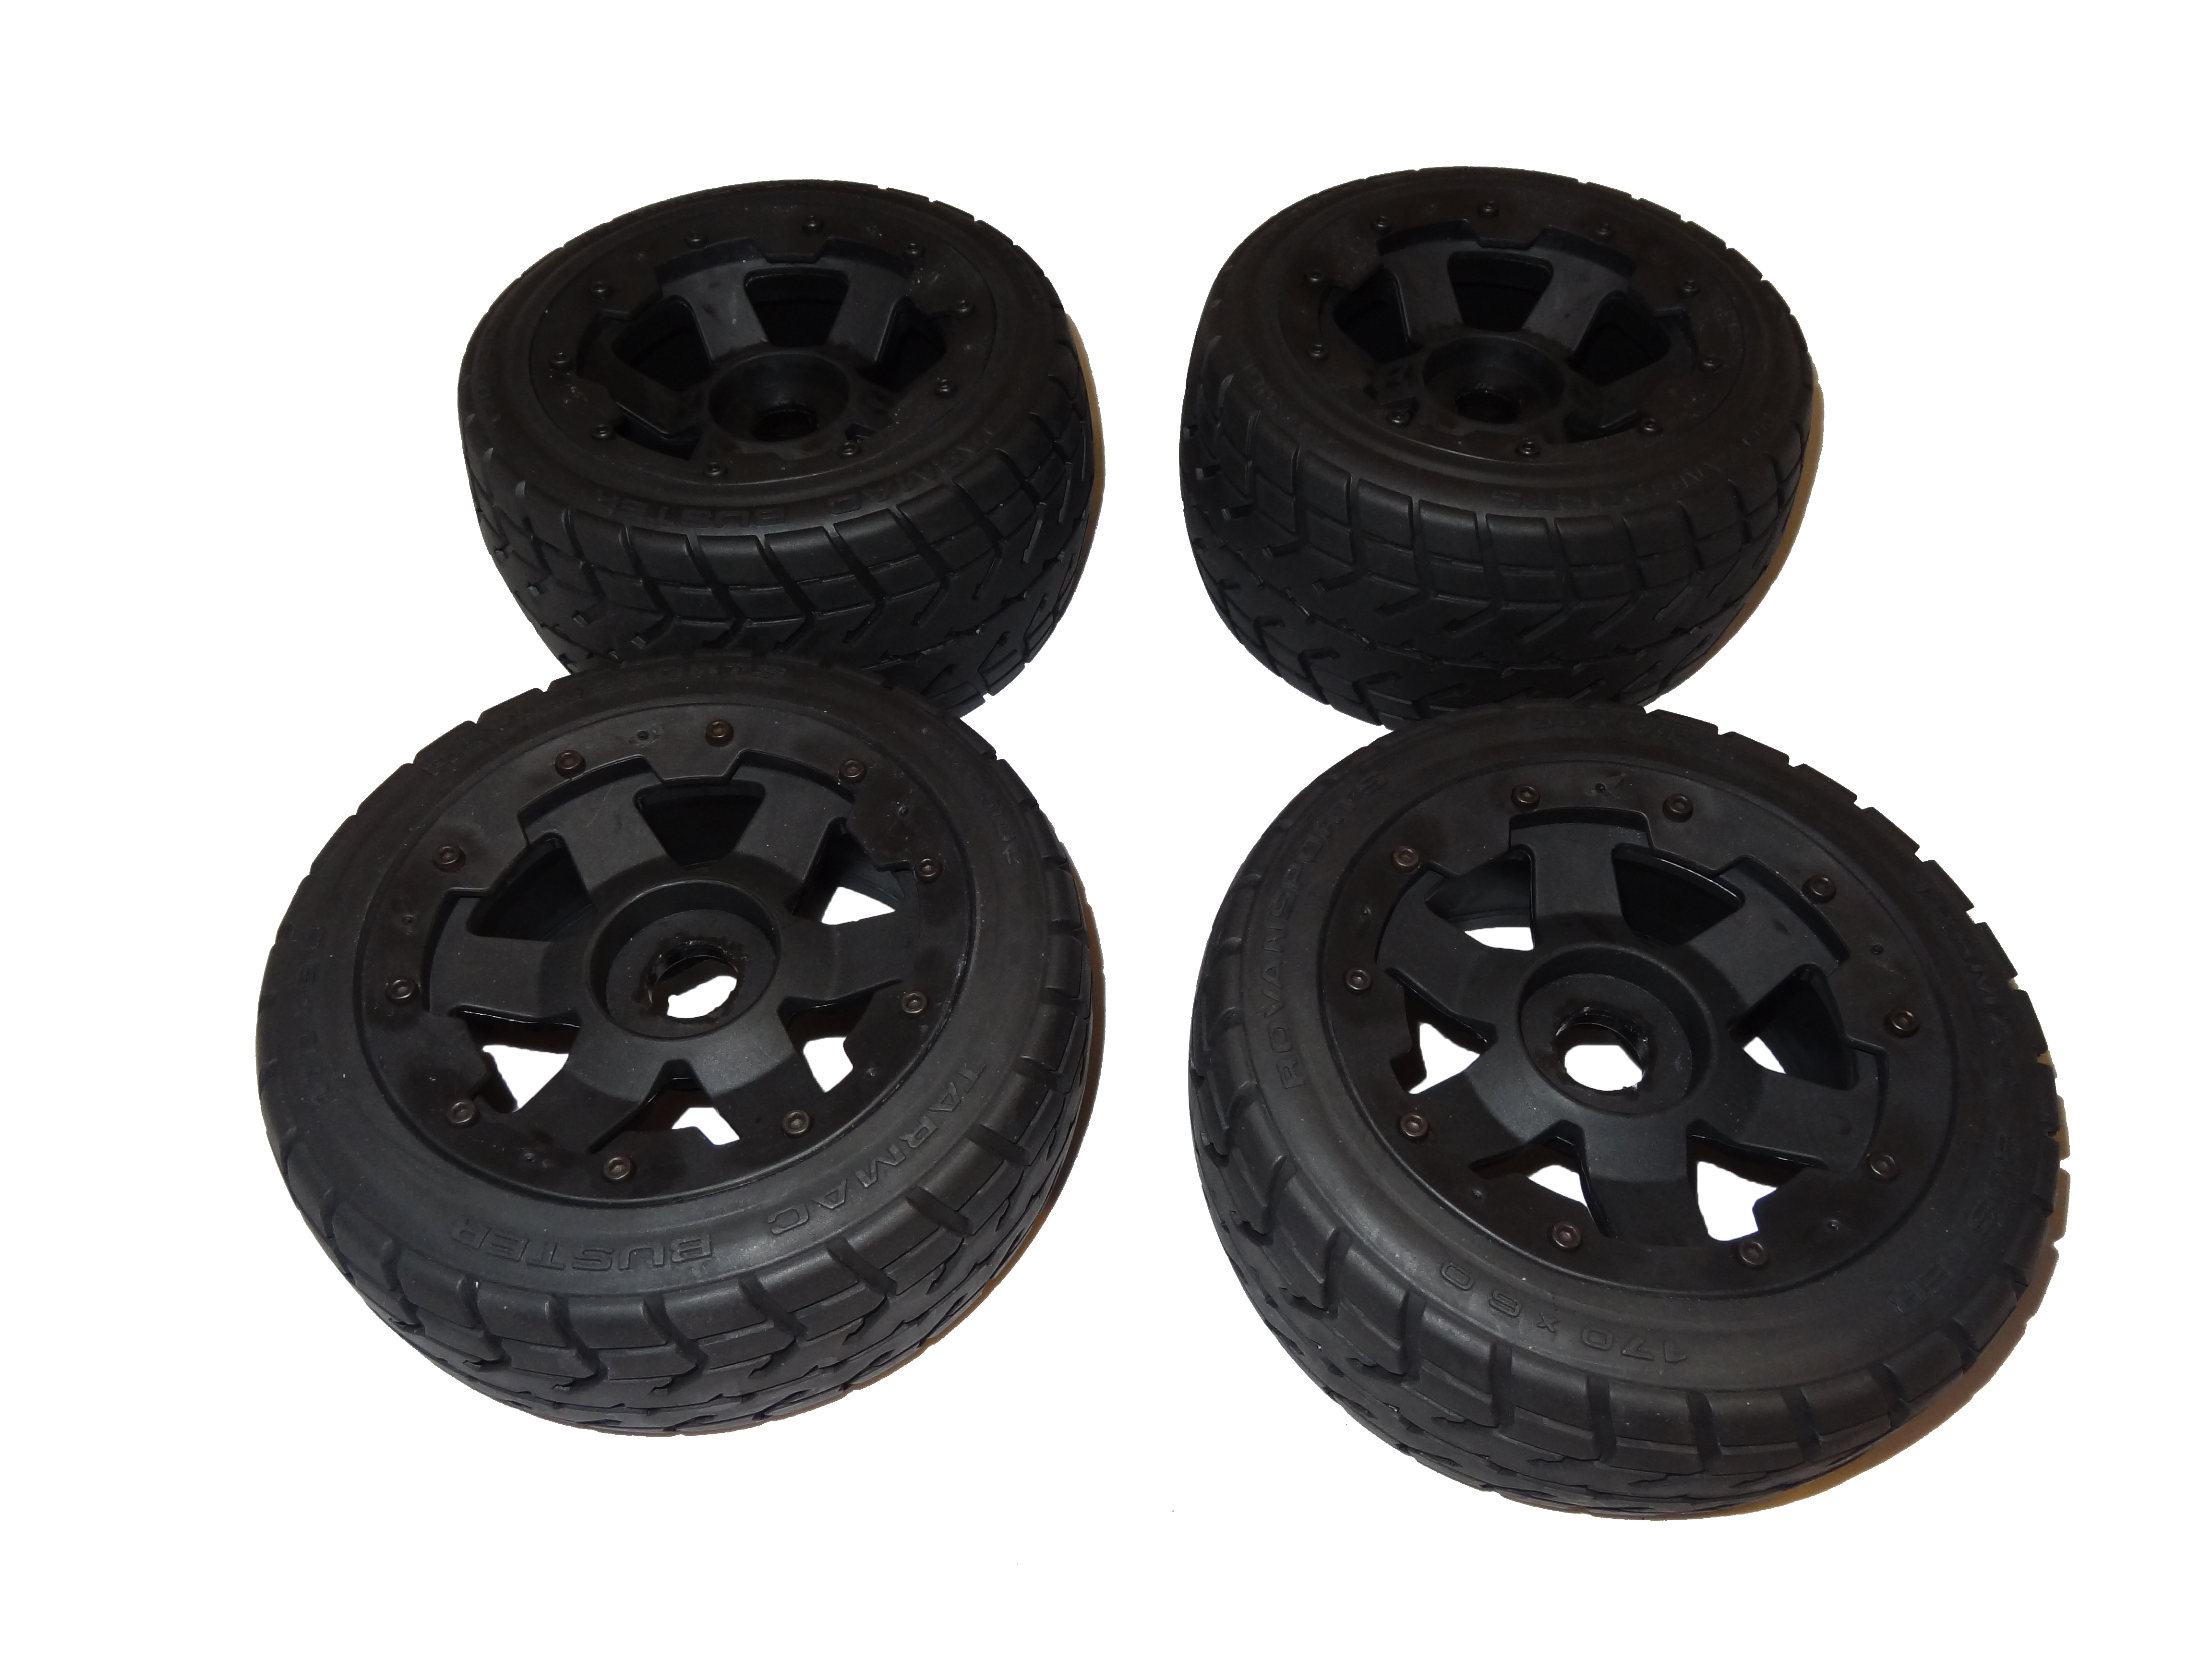 1/5 Baja Buggy Road Wheels on 6 Spoke Black Rims (set of 4)